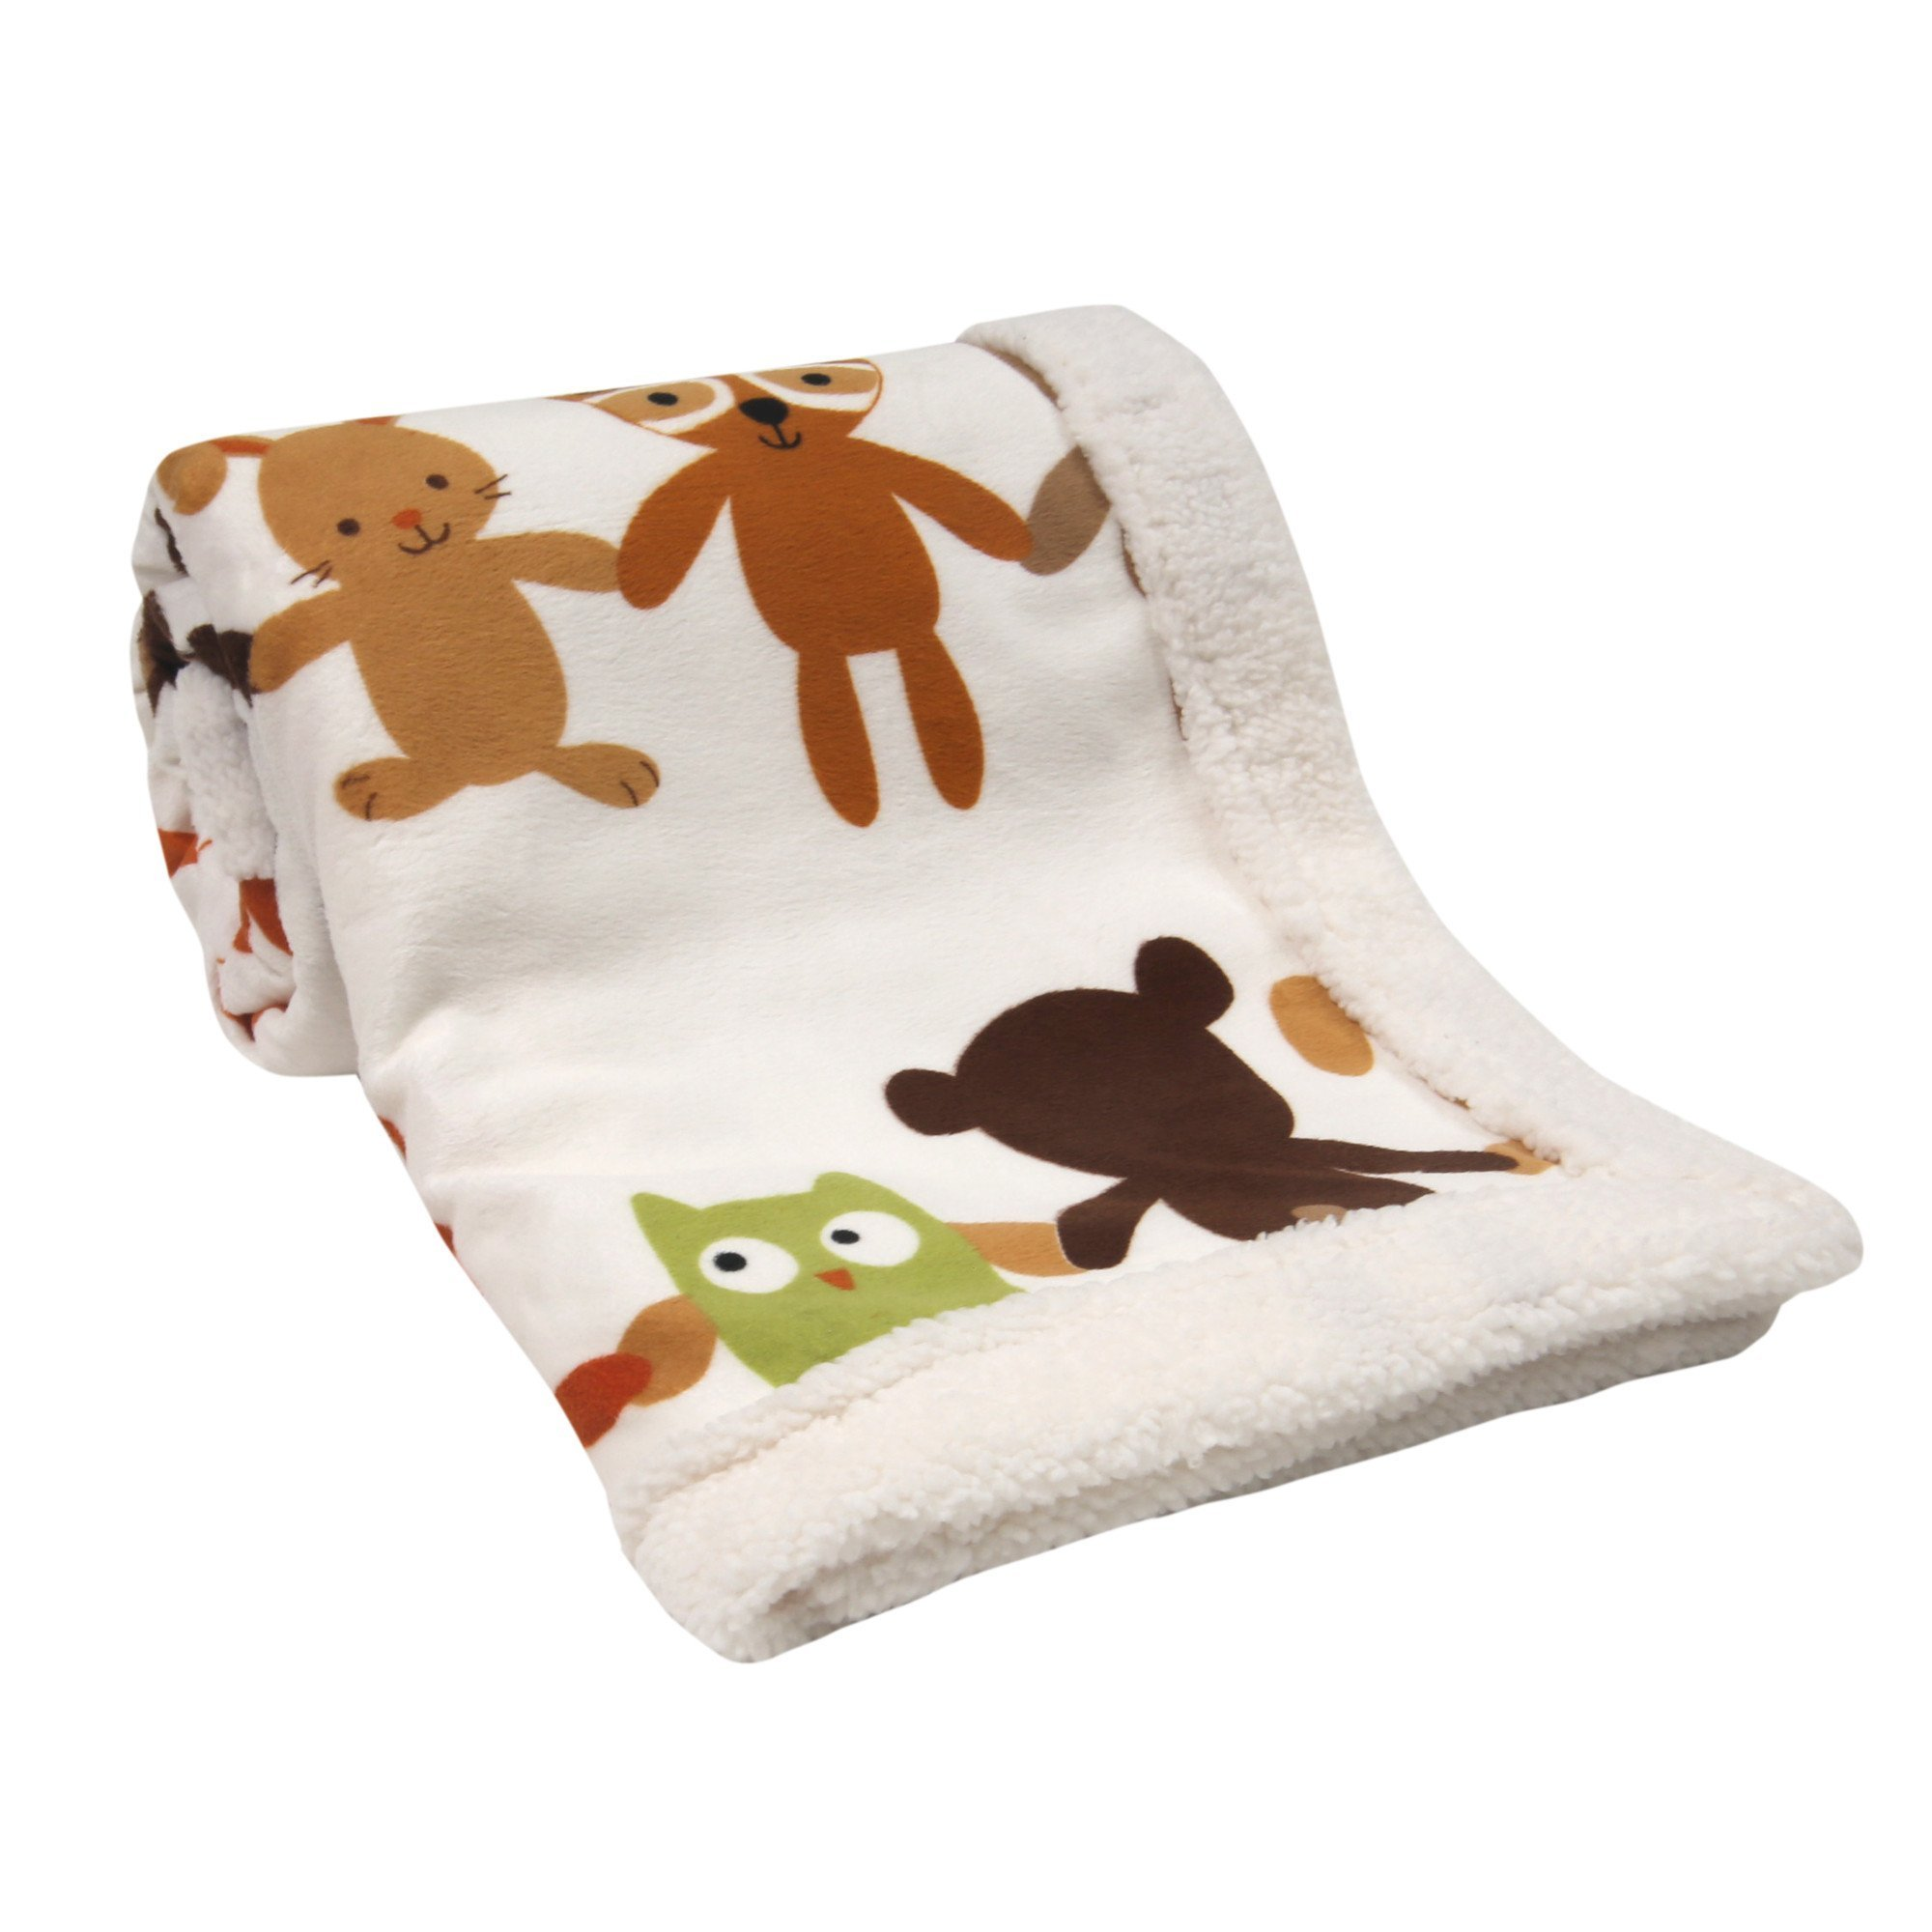 Lambs & Ivy Echo Cream/Multi Woodland Velour/Sherpa Blanket